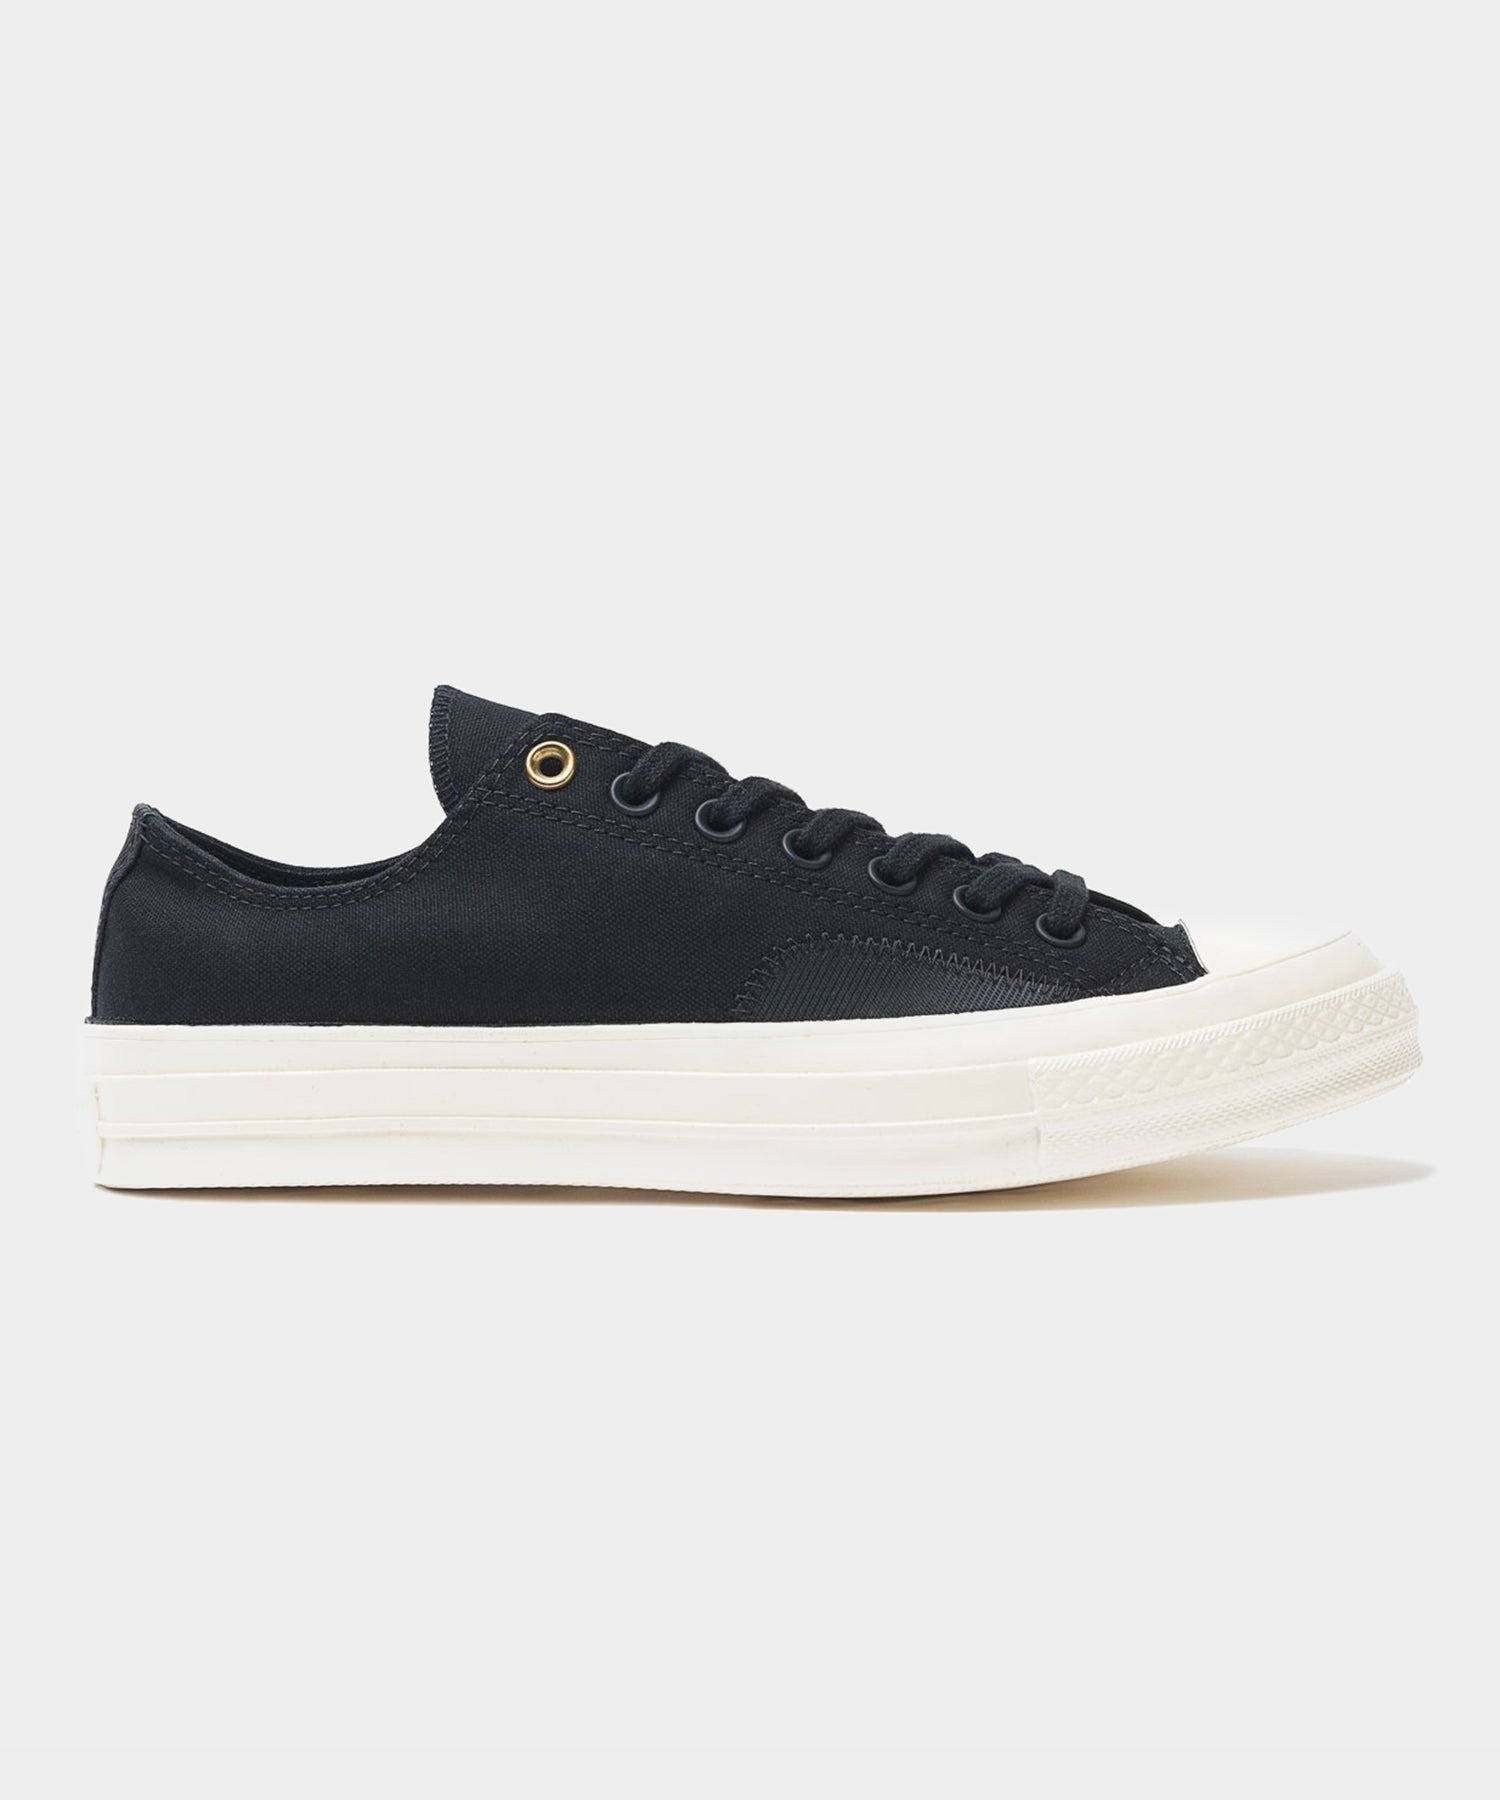 Converse Chuck 70 Low Ox Clean in Black